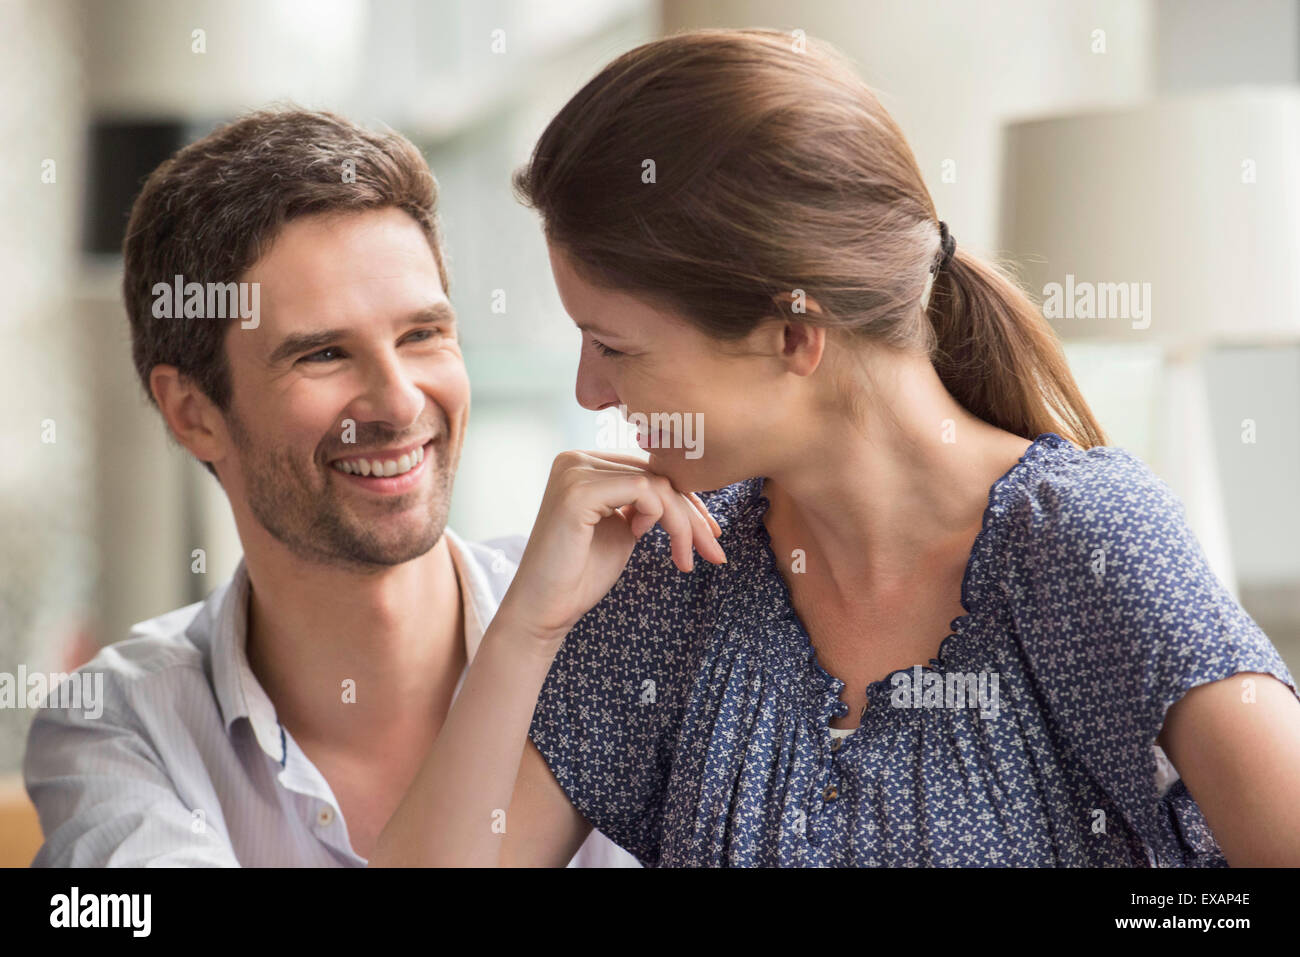 Couple smiling together at home - Stock Image